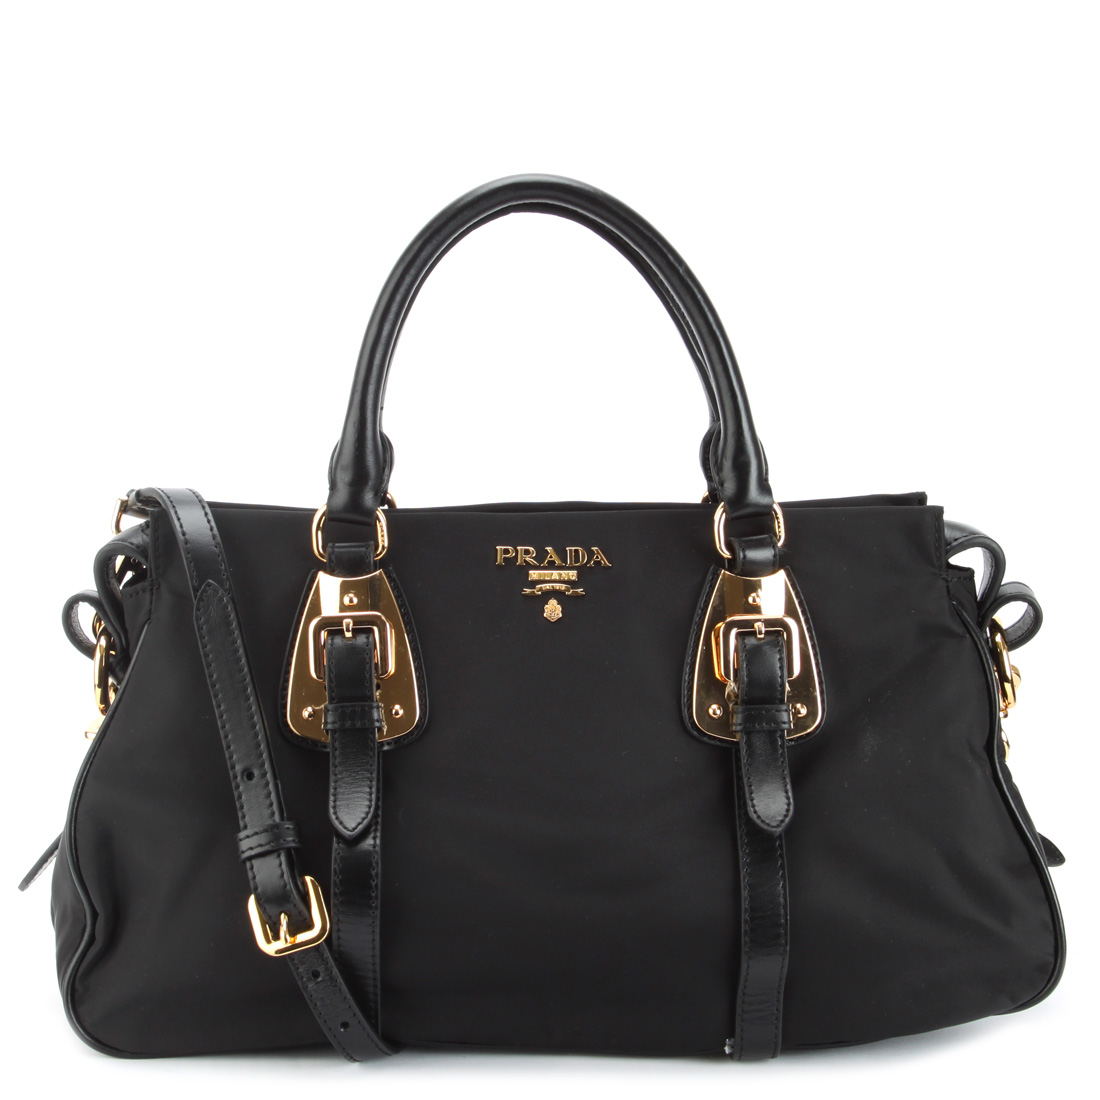 Authentic Designer Handbags Wholesale Uk